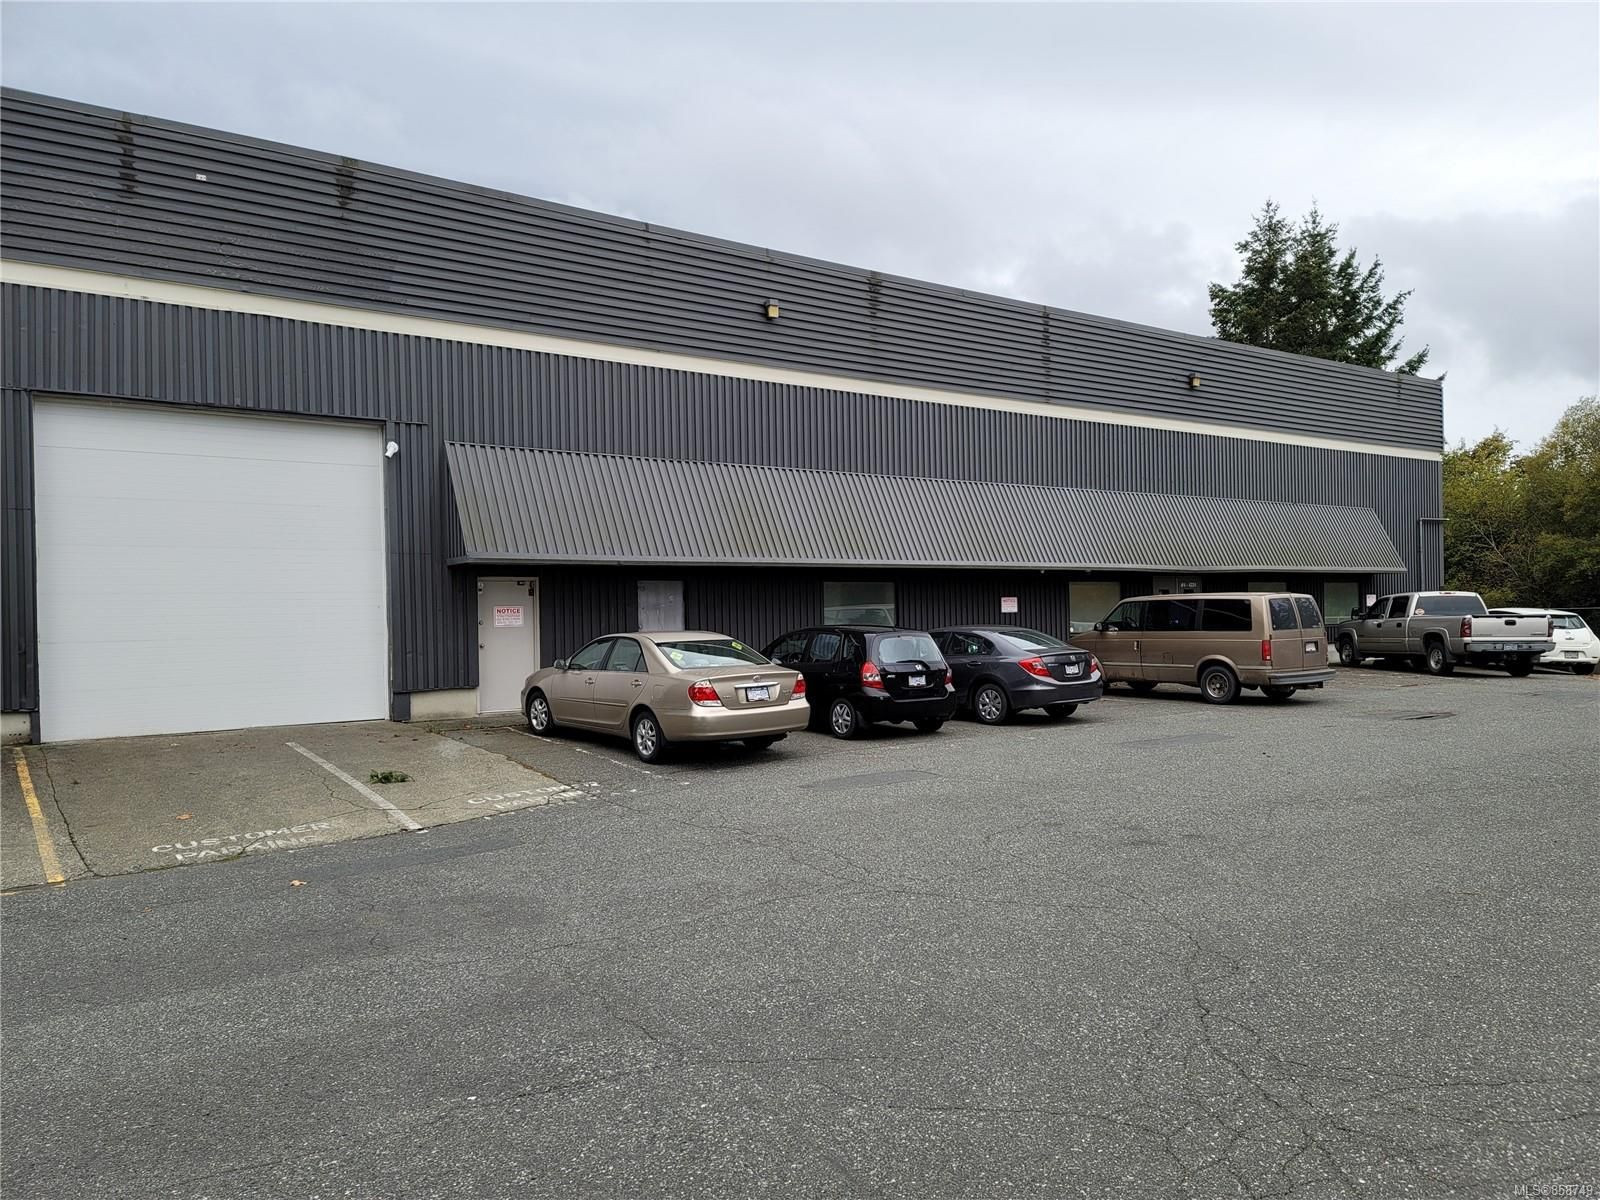 Main Photo: 4224 Commerce Cir in : SW Glanford Warehouse for lease (Saanich West)  : MLS®# 858749